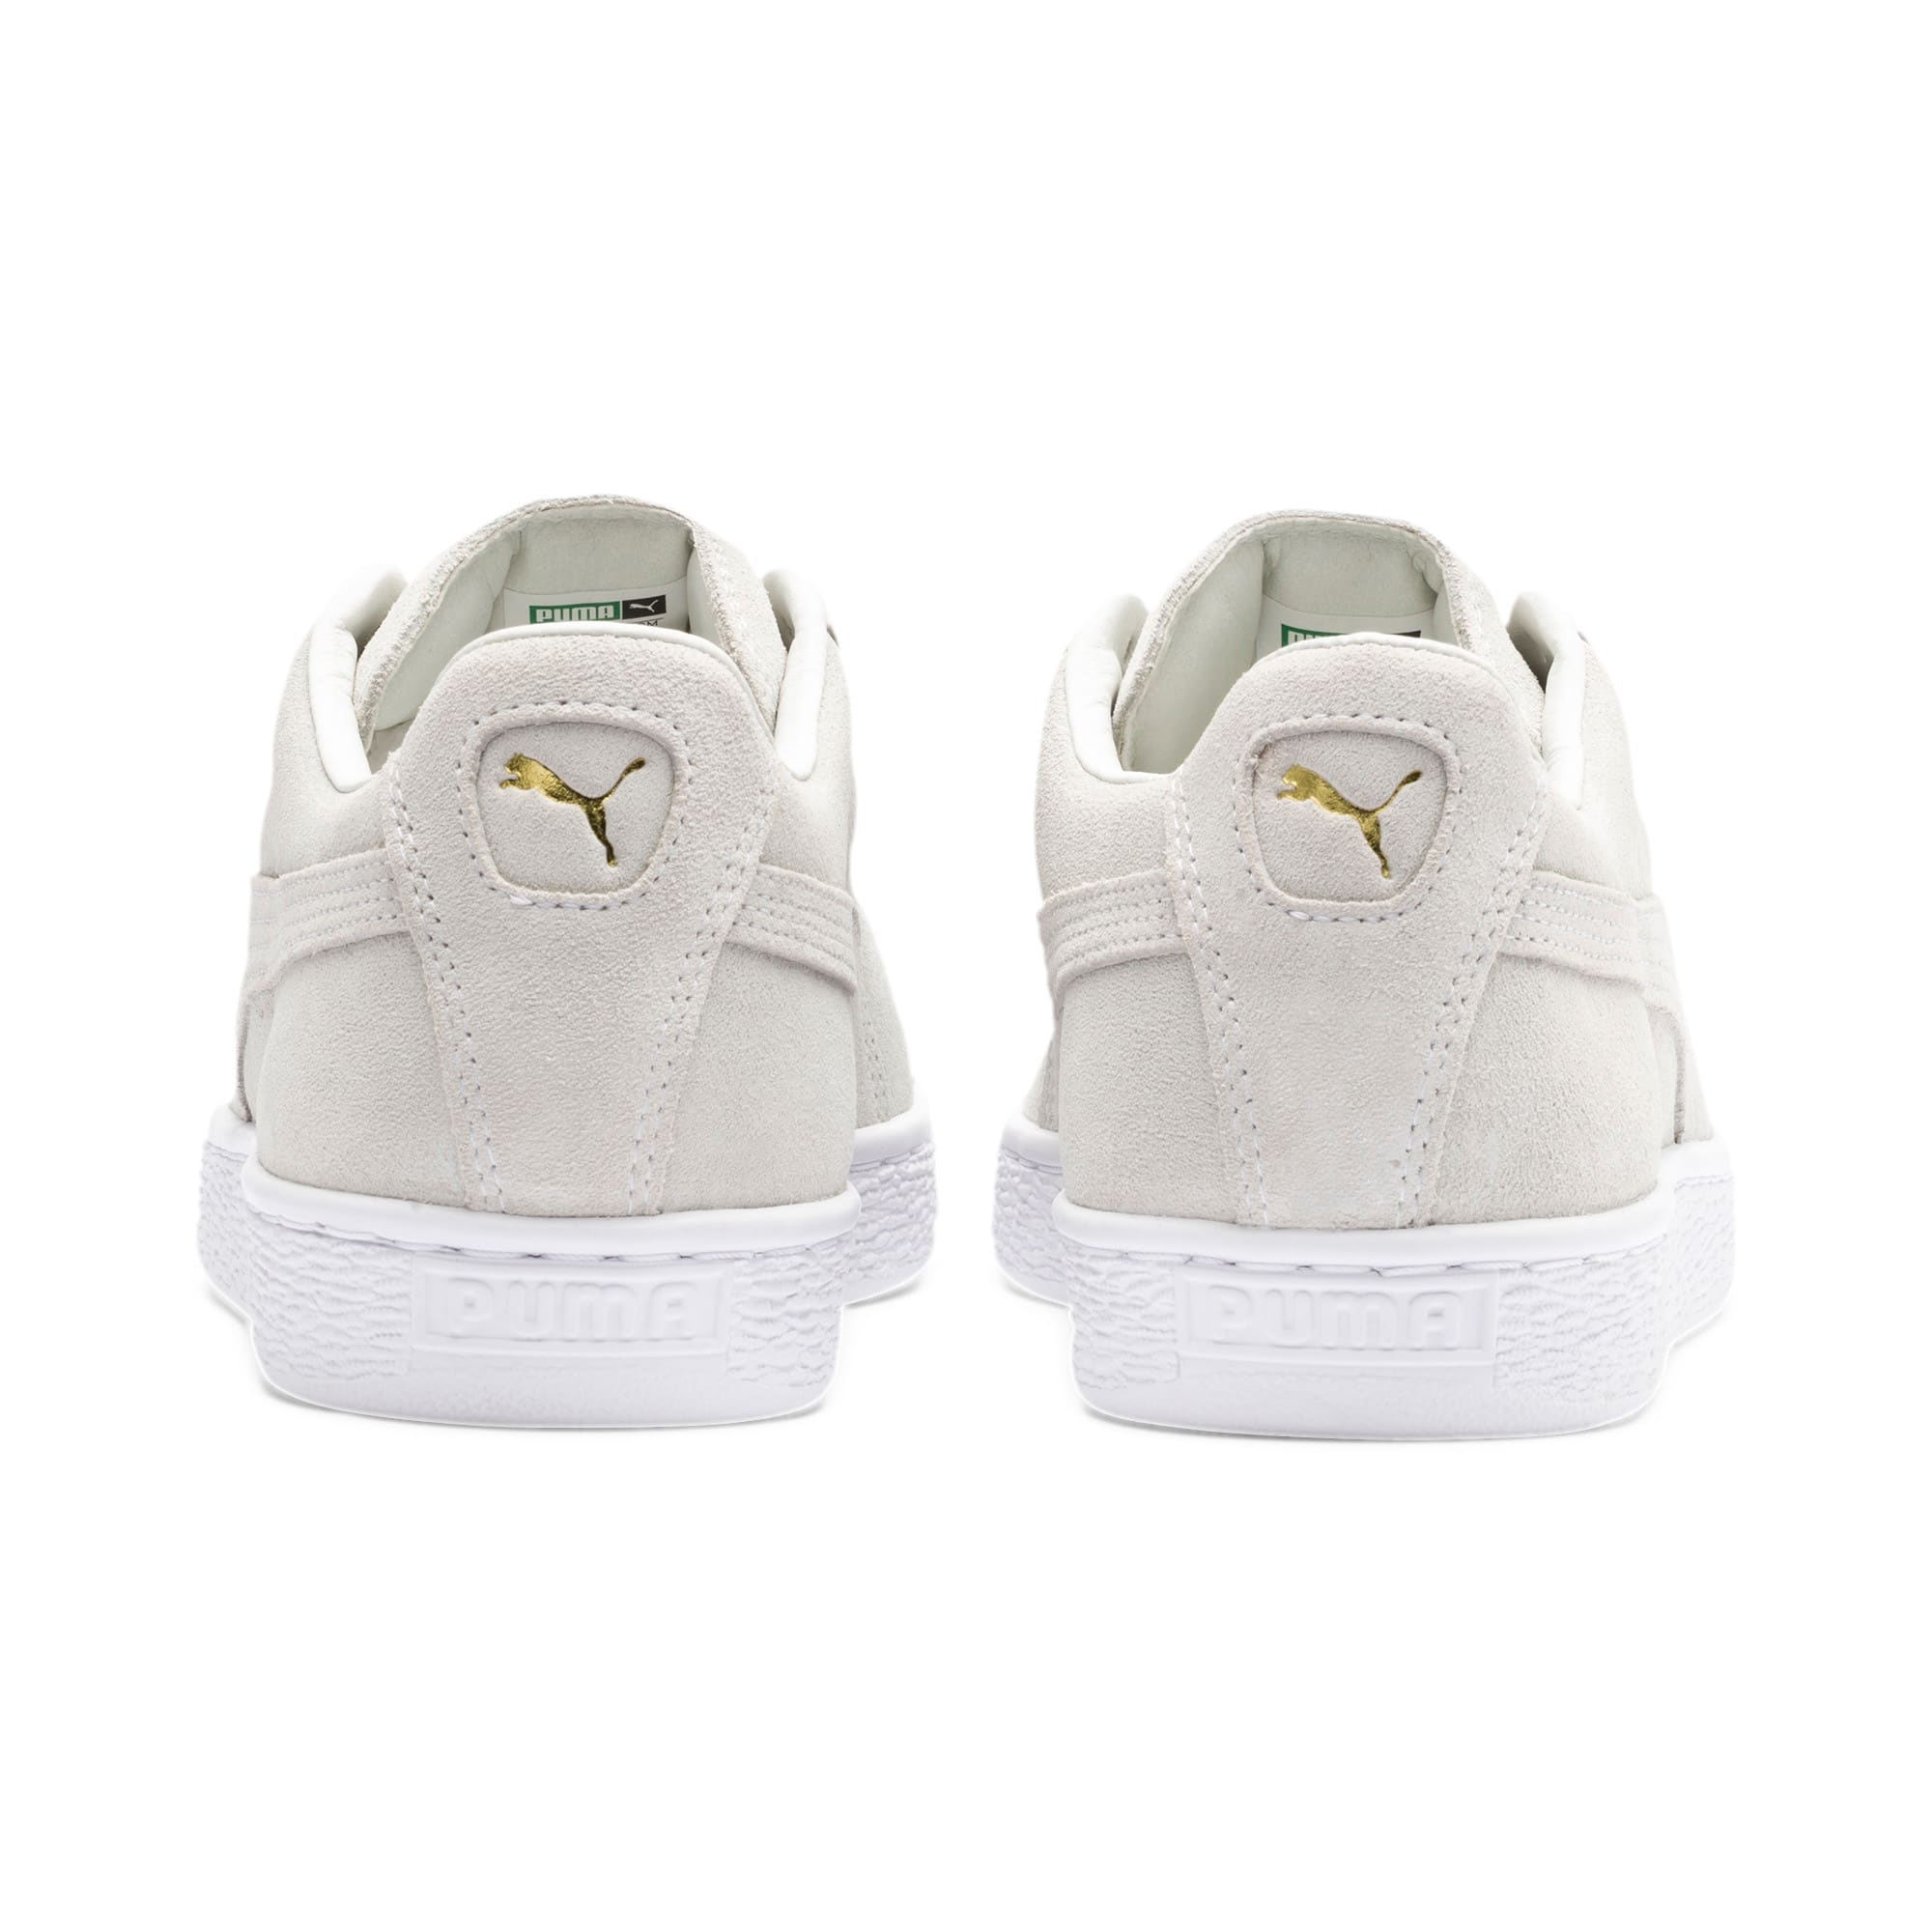 Thumbnail 4 of Suede Classic Metal Badge sportschoenen, Puma White-White-Team Gold, medium